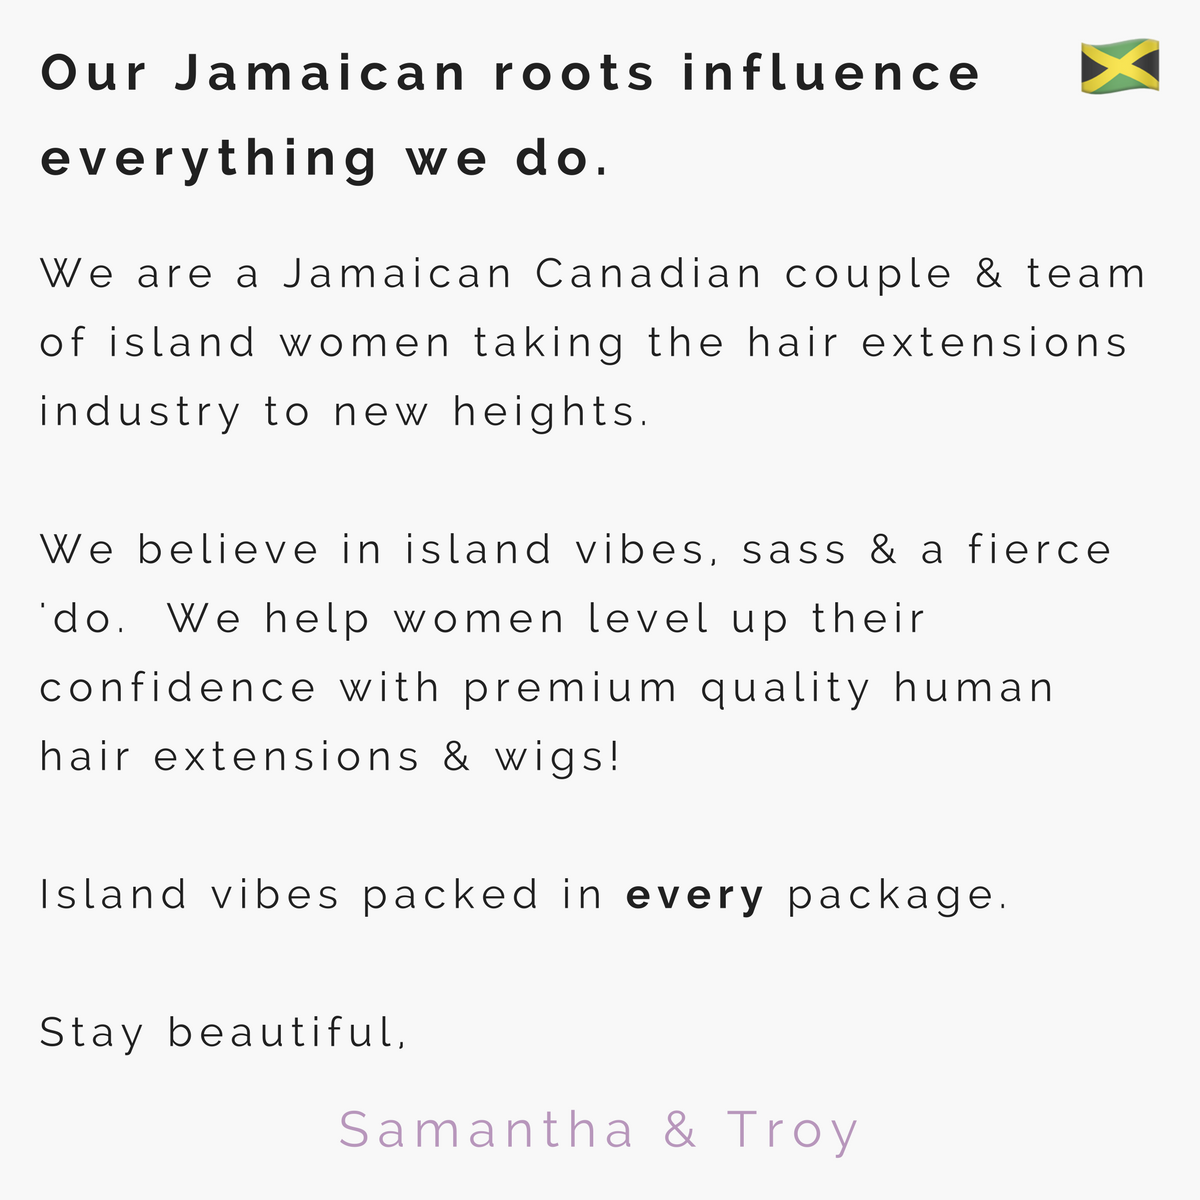 We are a Jamaican Canadian couple & team of island women taking the hair extensions industry to new heights.   We believe in island vibes, sass & a fierce 'do.  We help women level up their confidence with premium quality human hair extensions & wigs! Island vibes packed in every package. Stay beautiful,